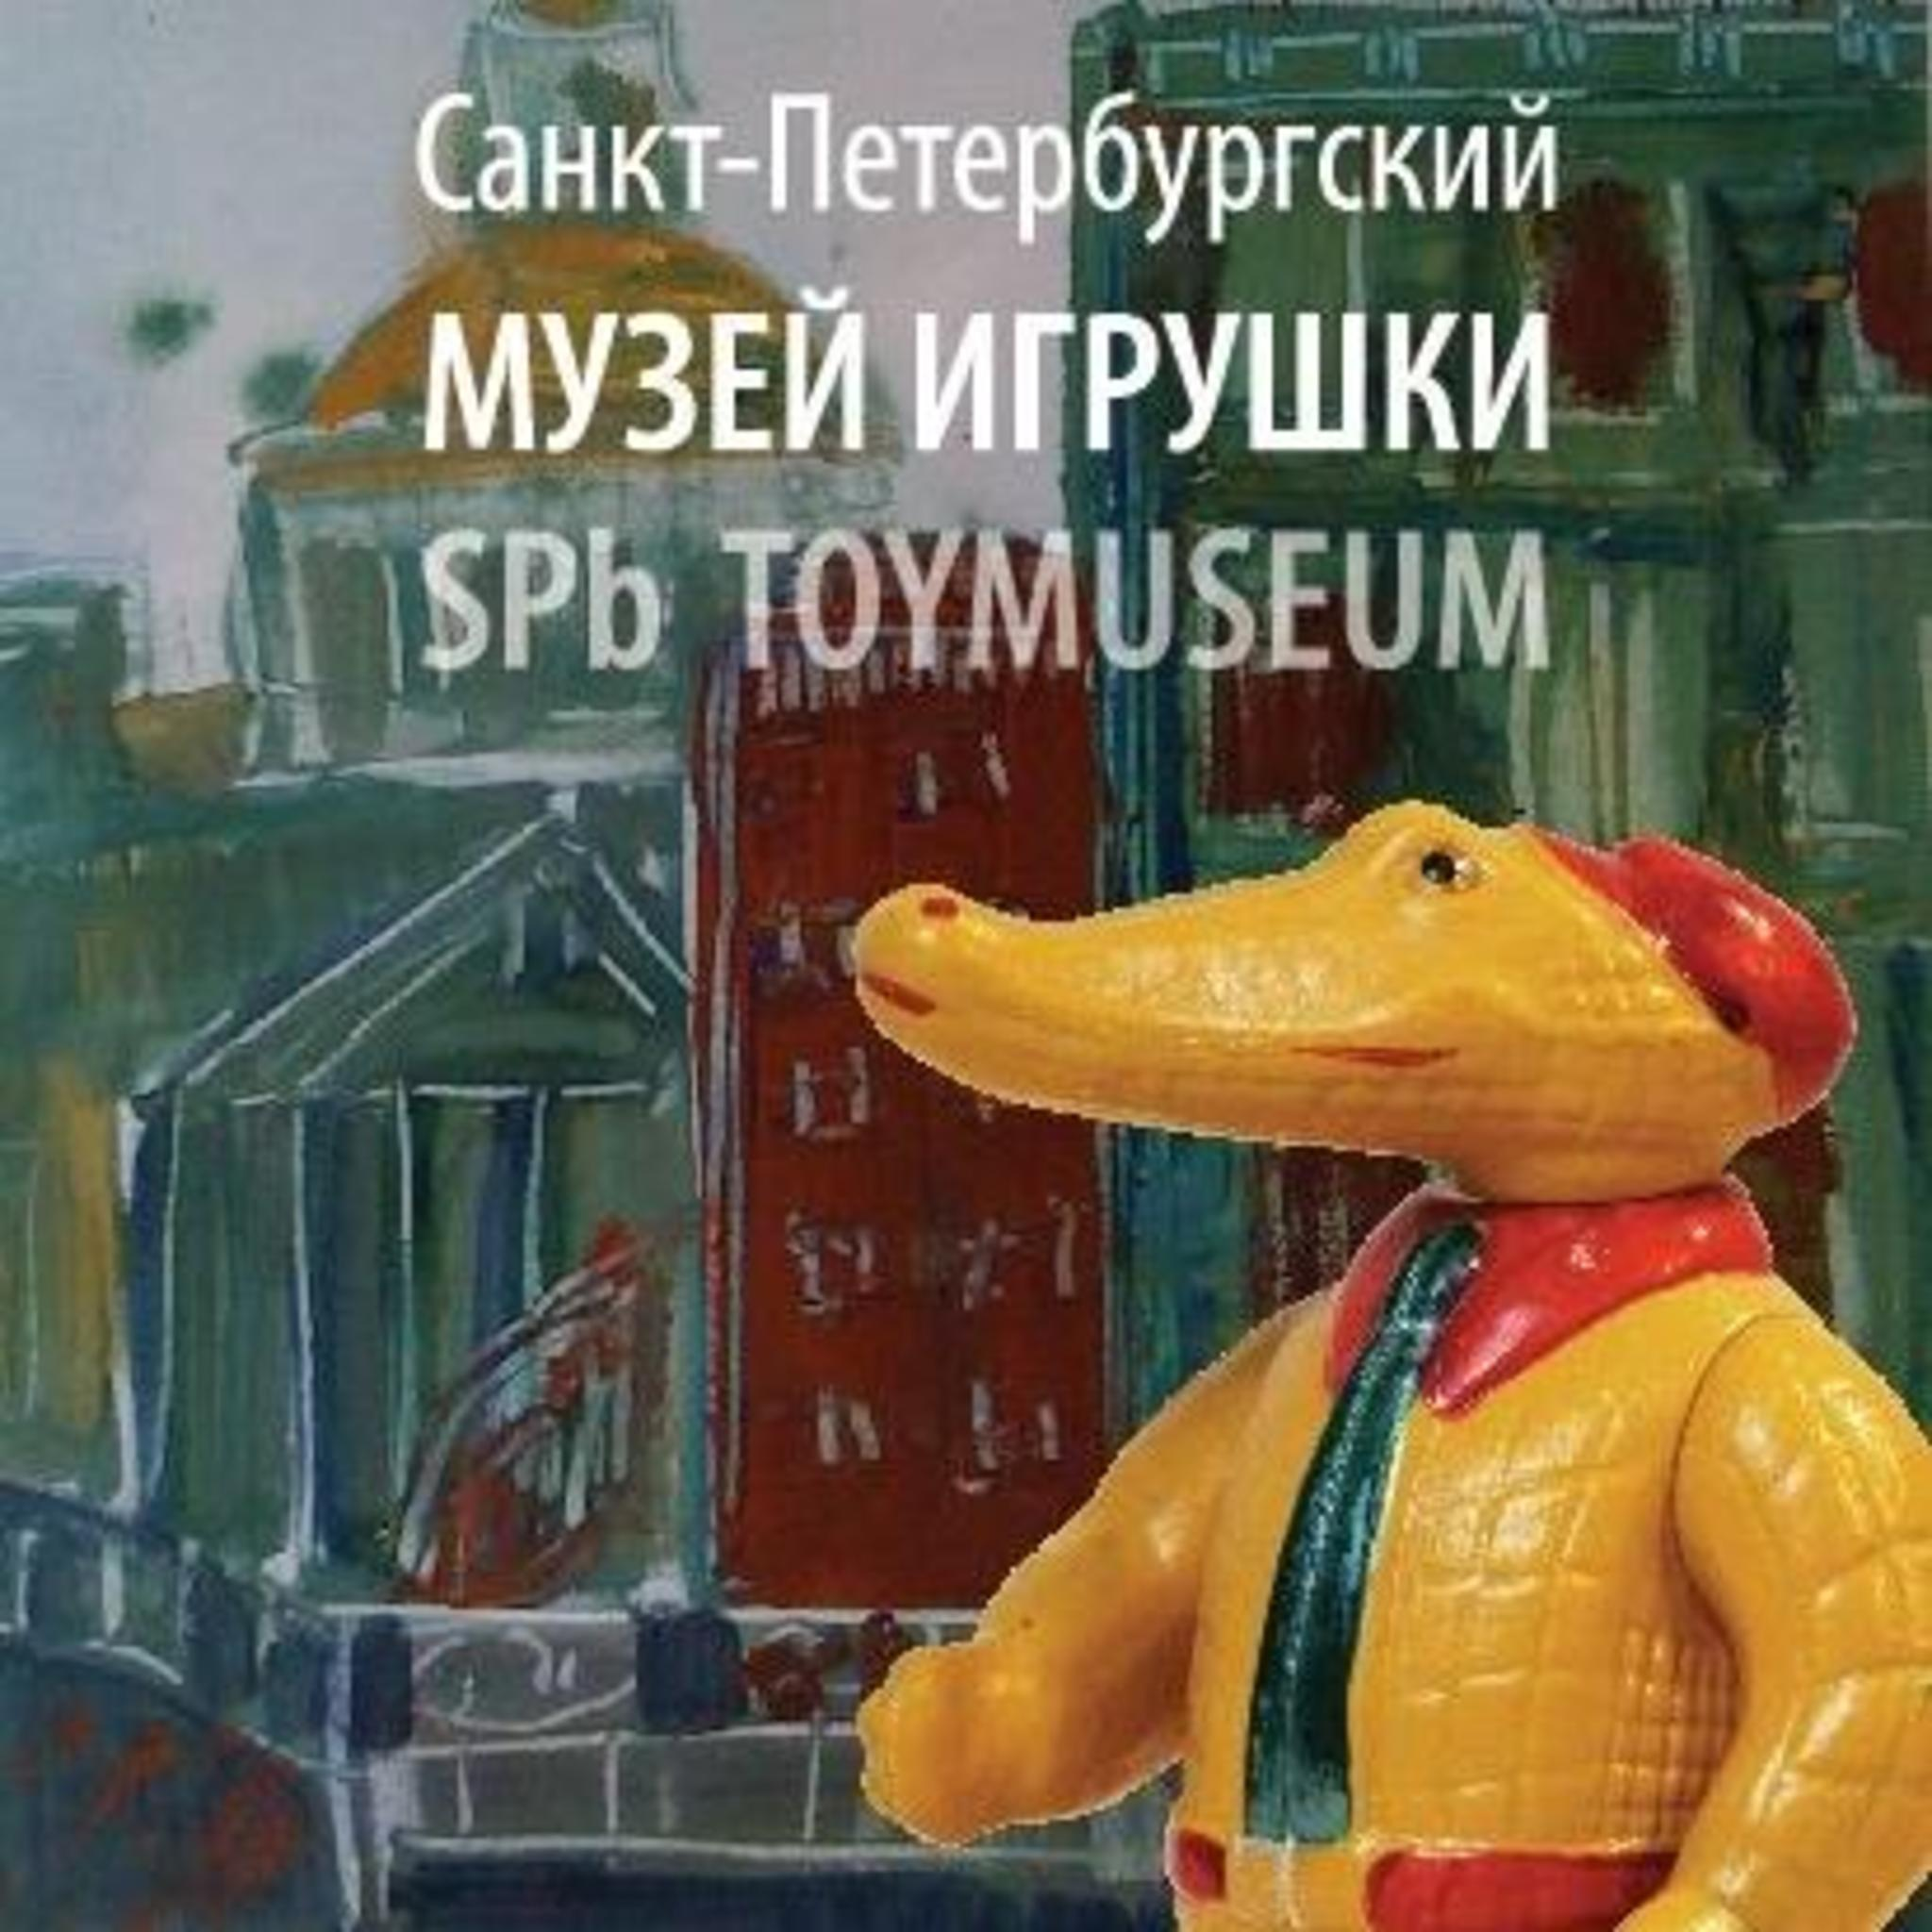 St. Petersburg Museum of Toys